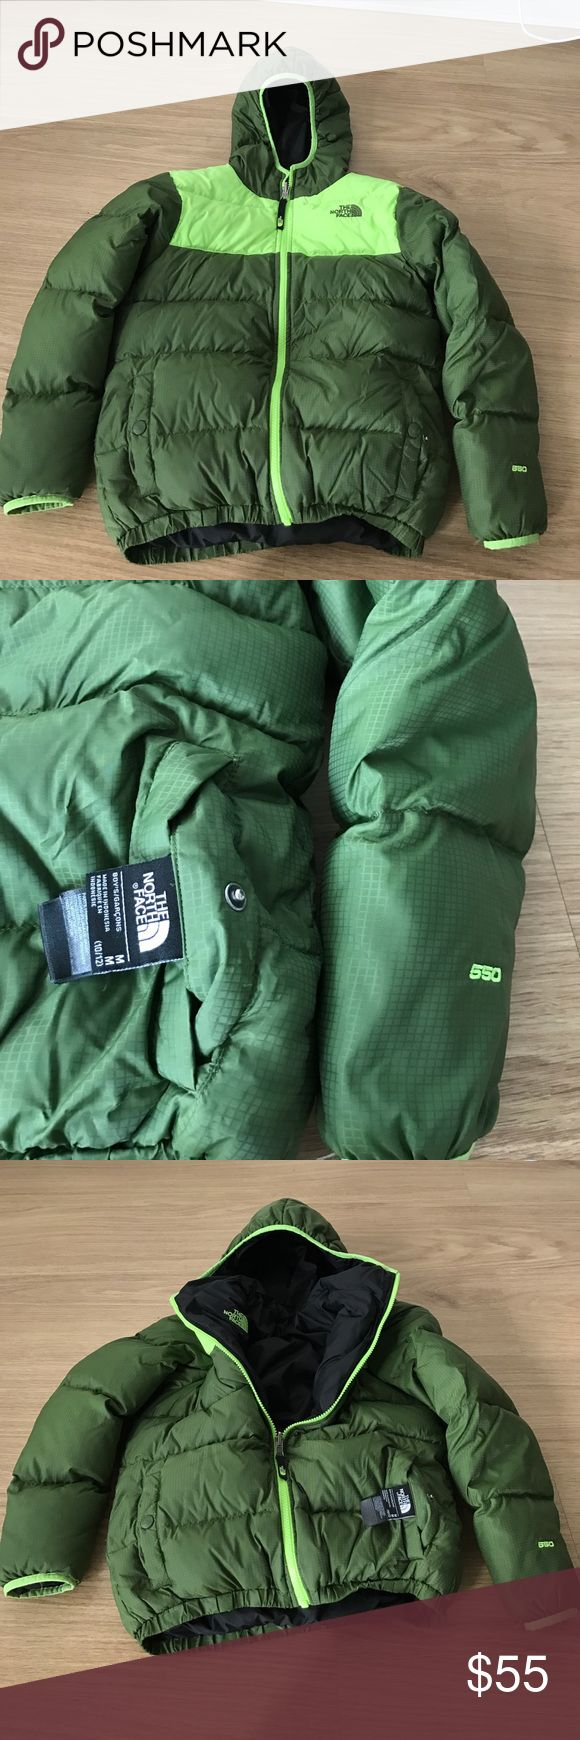 THE NORTH FACE boys winter ❄️ jacket 550 M 10-12 BOYS THE North Face size M 10-12 filers 550 reversible boys jacket black color and bright green -green color very gentle wear condition The North Face Jackets & Coats Puffers